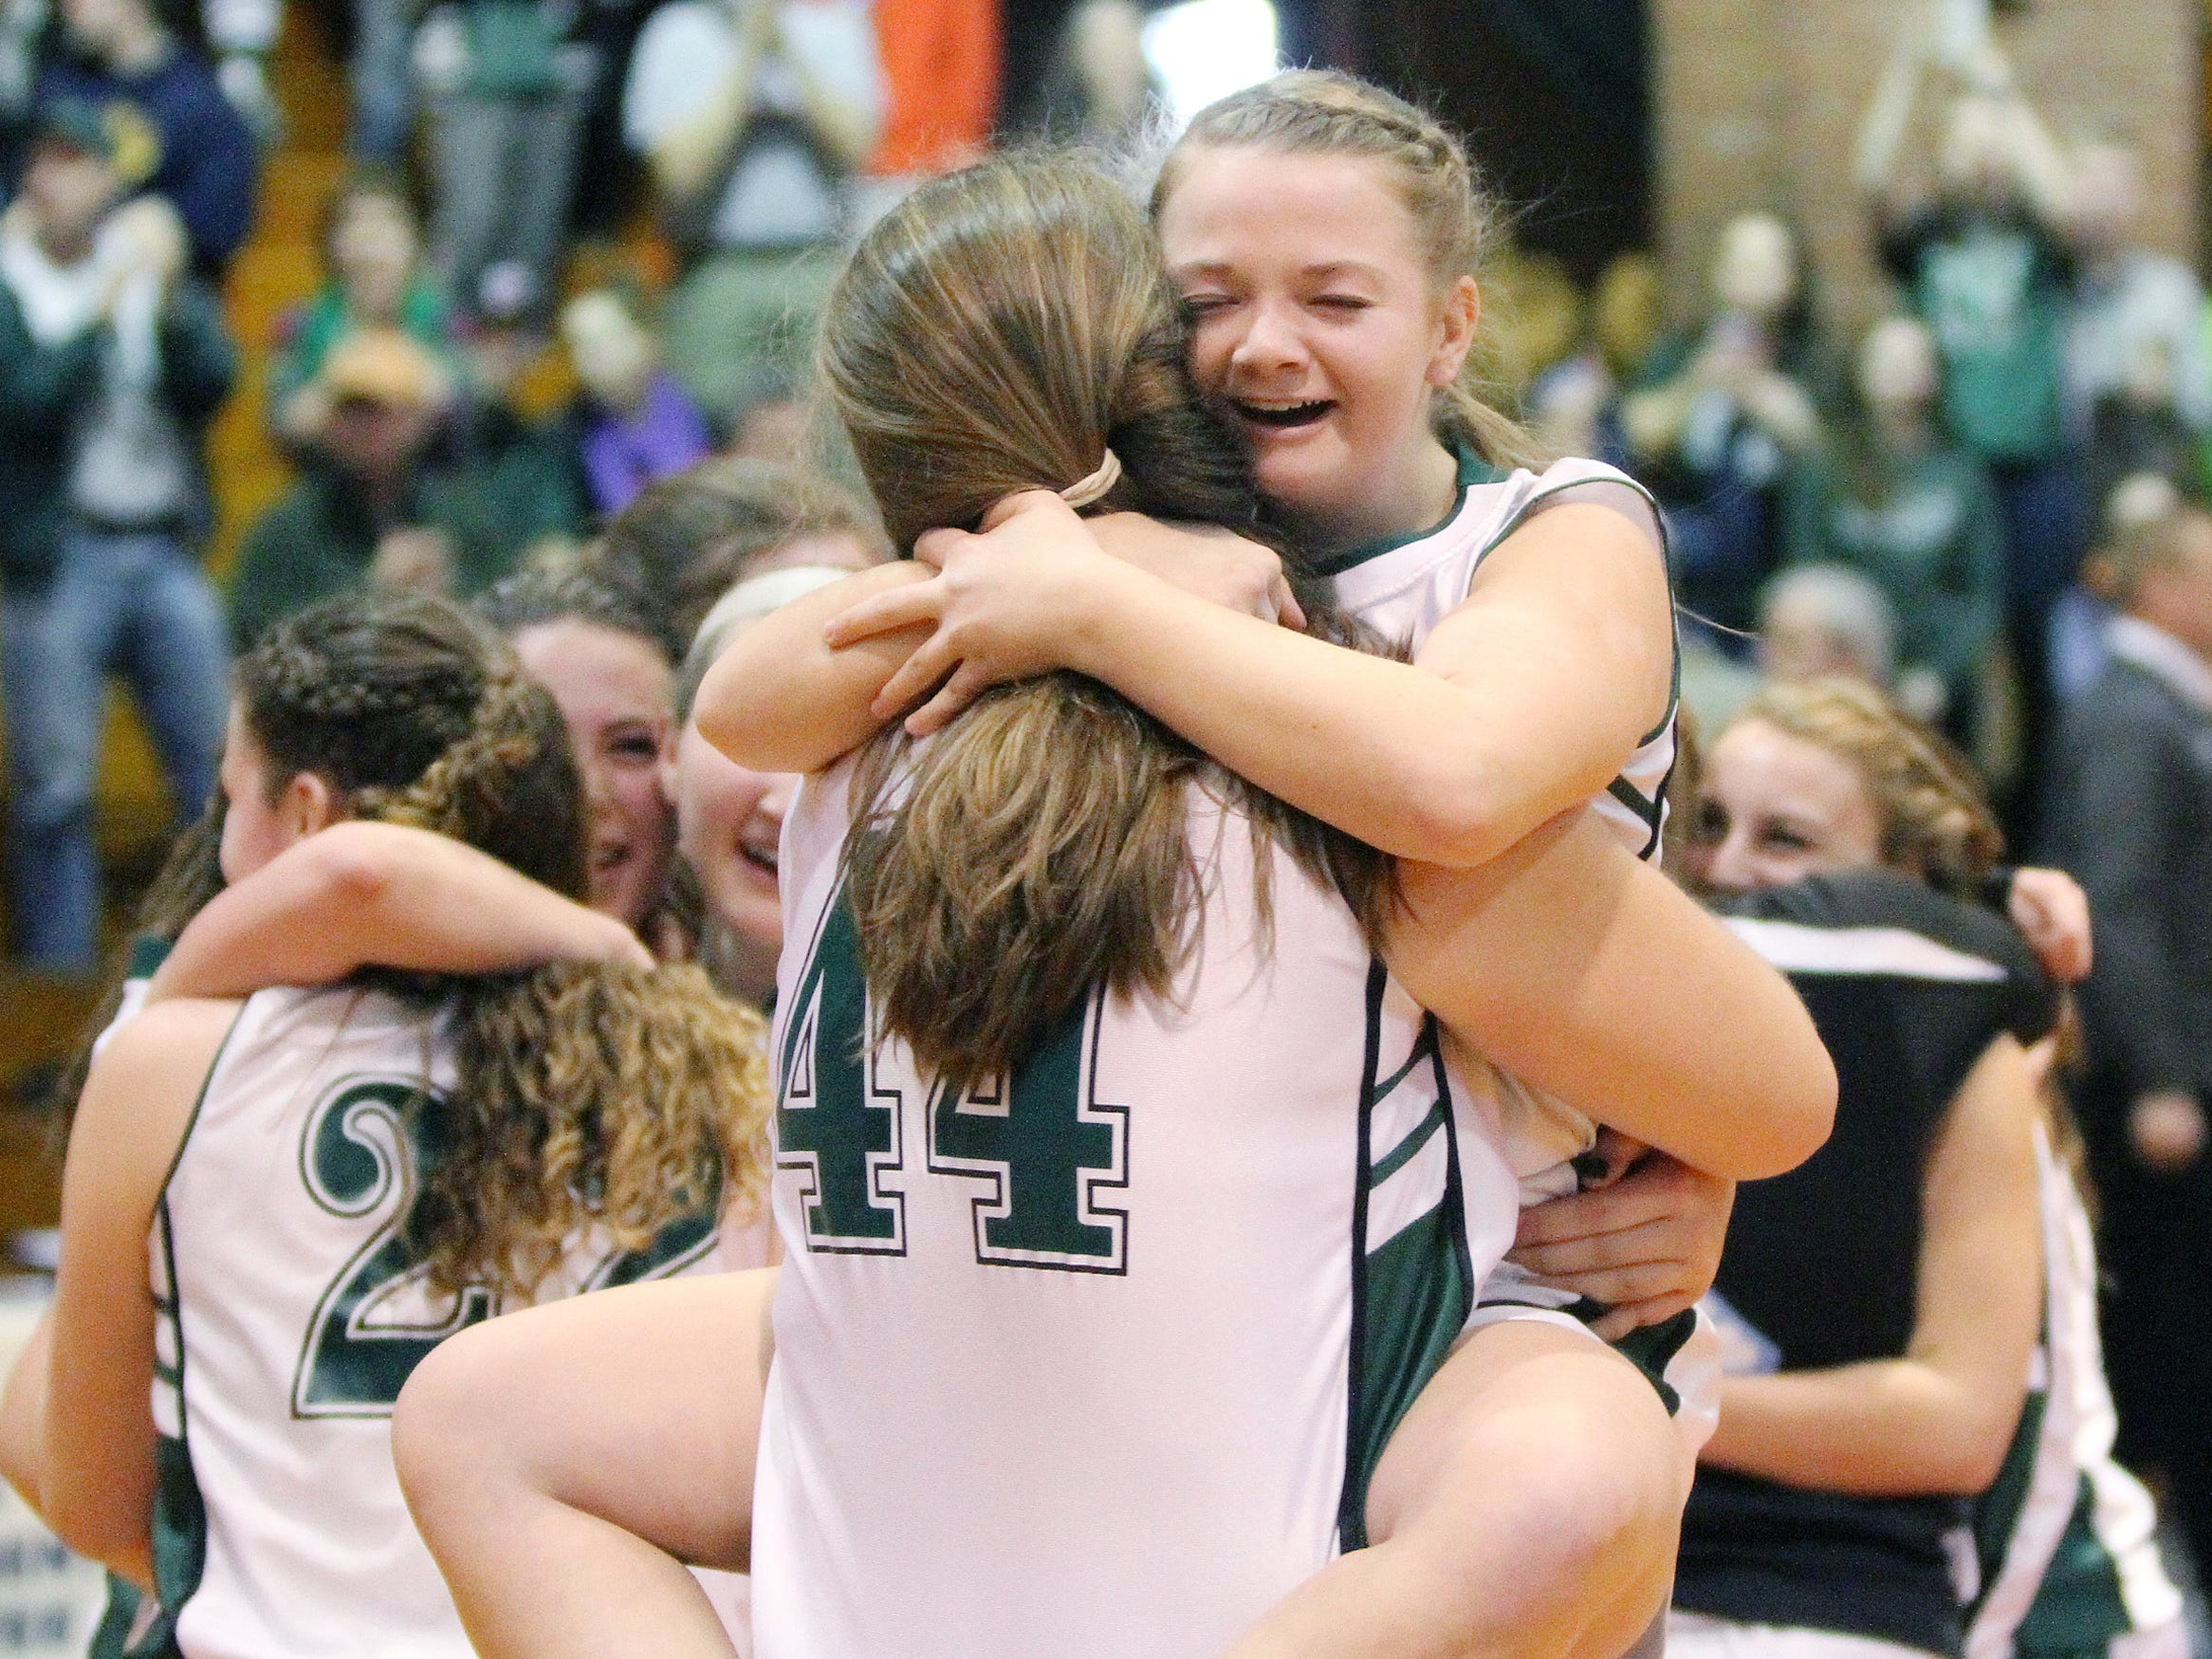 Mount St. Joseph's Olivia Corbett, right, hugs teammate Sally Hogan their 35-29 win over Proctor in the Division IV high school state championship game at Barre Auditorium on Saturday.